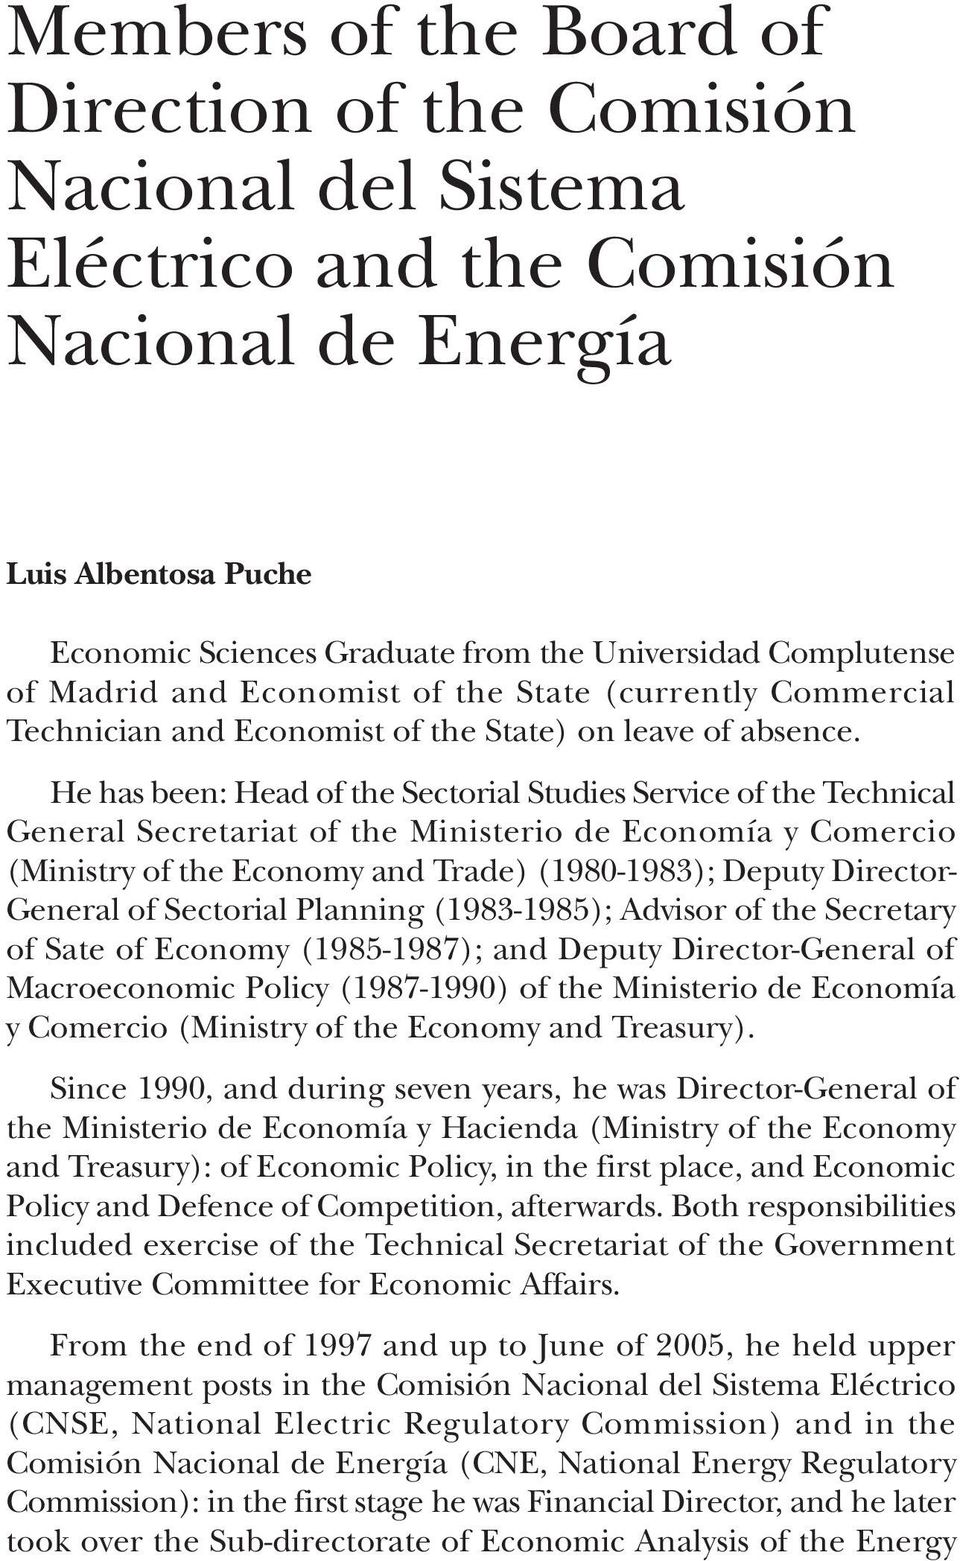 He has been: Head of the Sectorial Studies Service of the Technical General Secretariat of the Ministerio de Economía y Comercio (Ministry of the Economy and Trade) (1980-1983); Deputy Director-